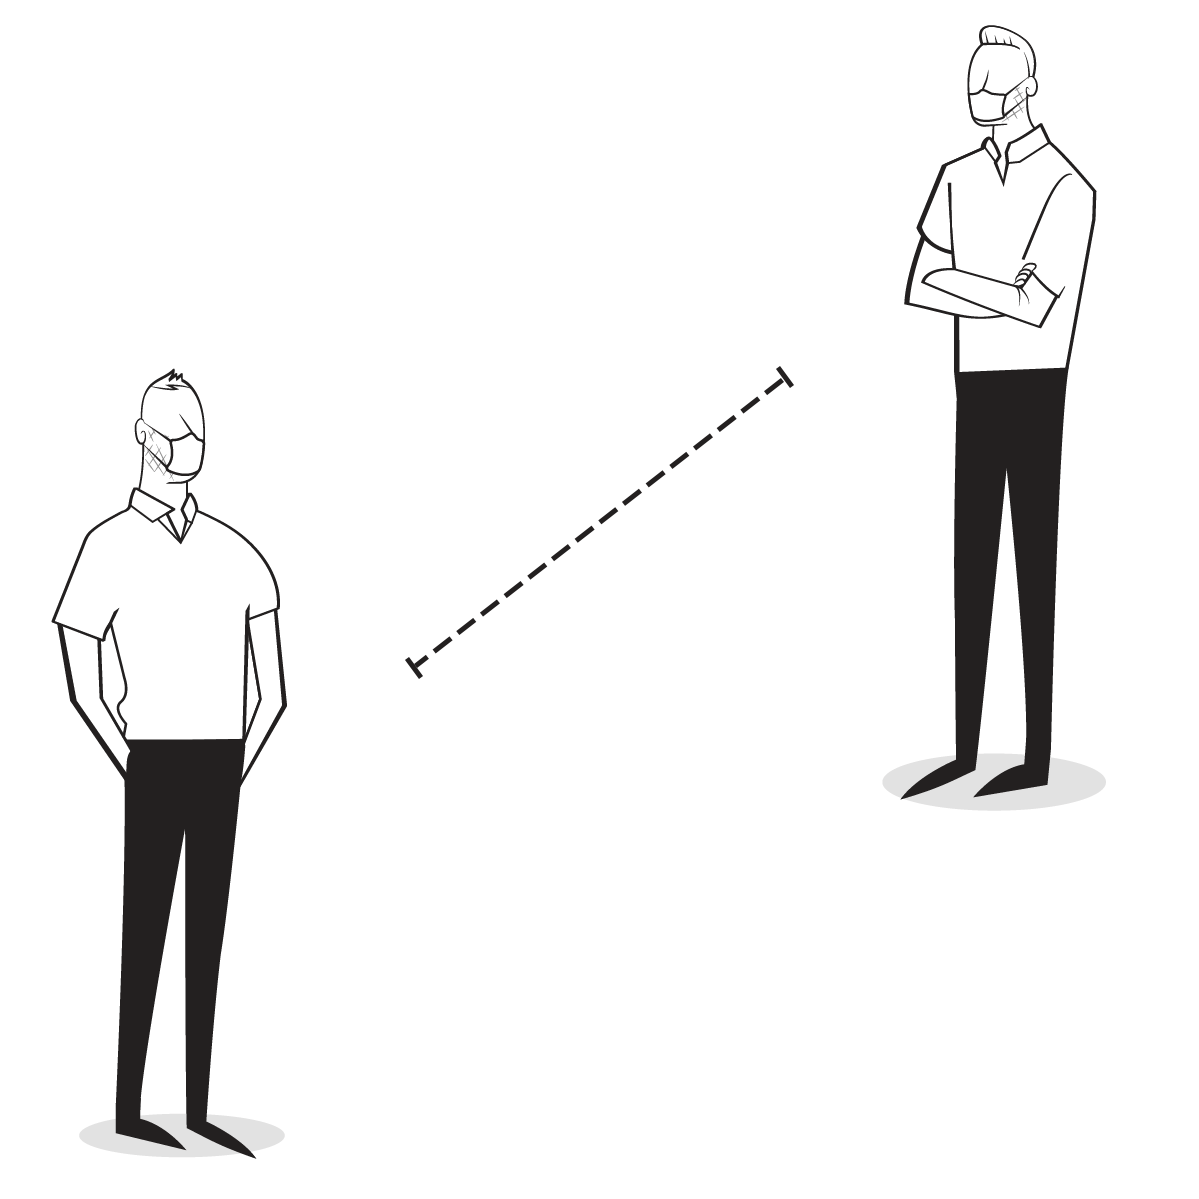 Graphic of Dr. Wagner and Dr. Pinar demonstrating social distancing.